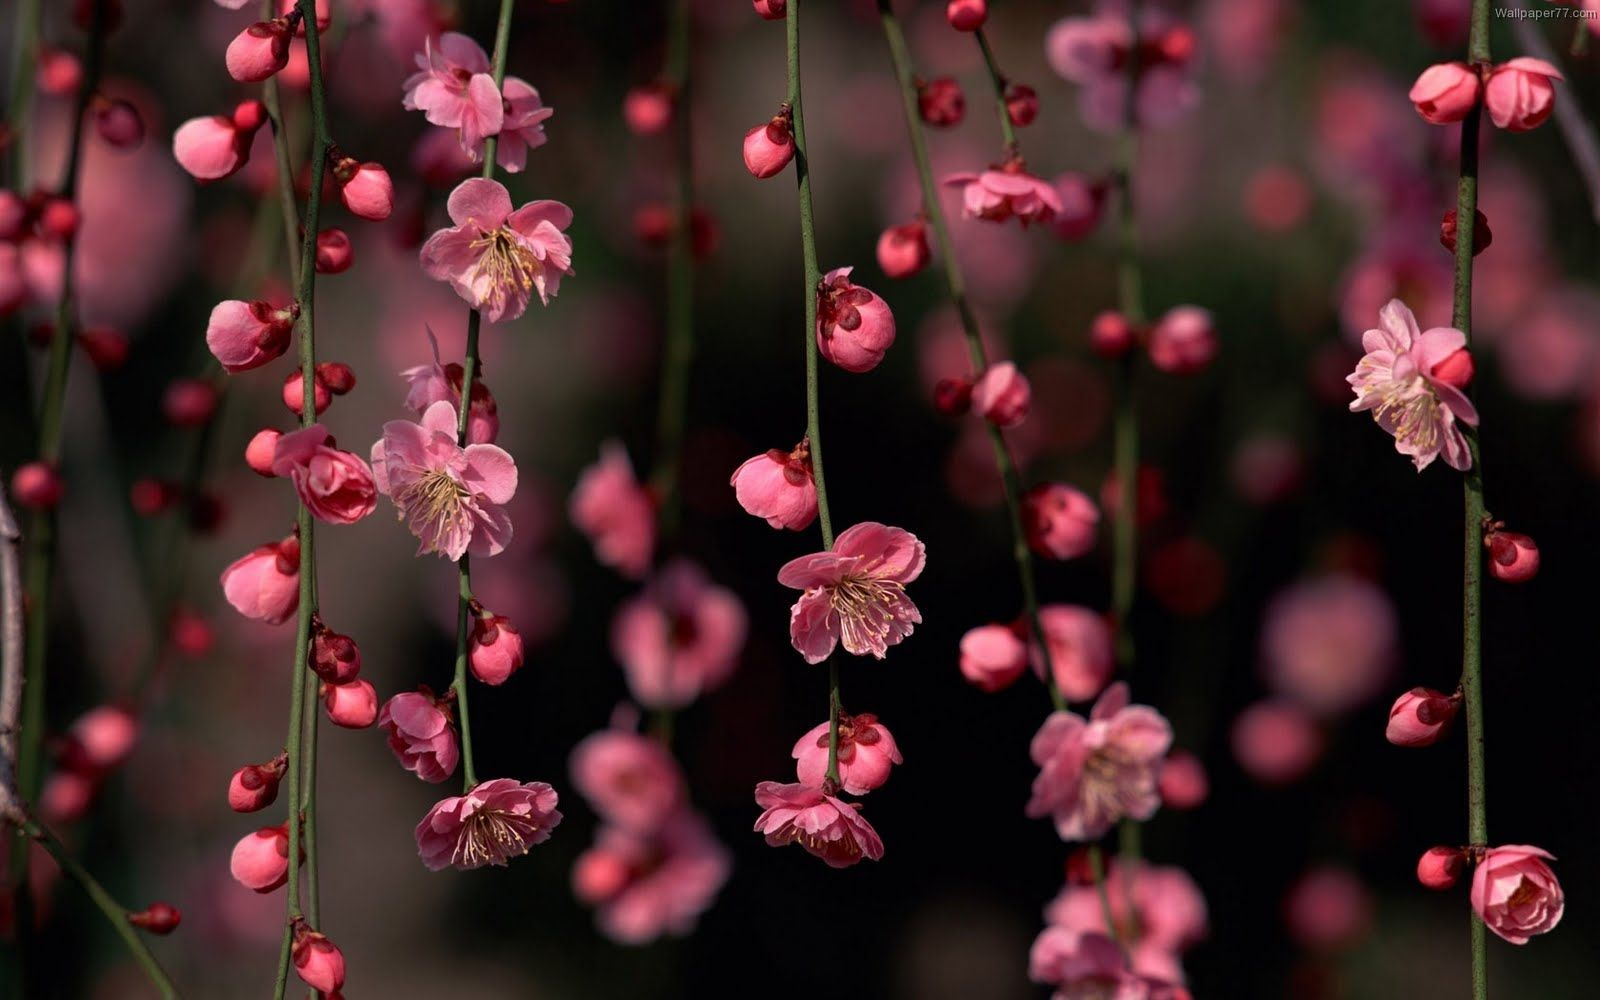 Pink Flowers Wallpapers Pink Flowers Wallpaper Flower Desktop Wallpaper Spring Flowers Wallpaper